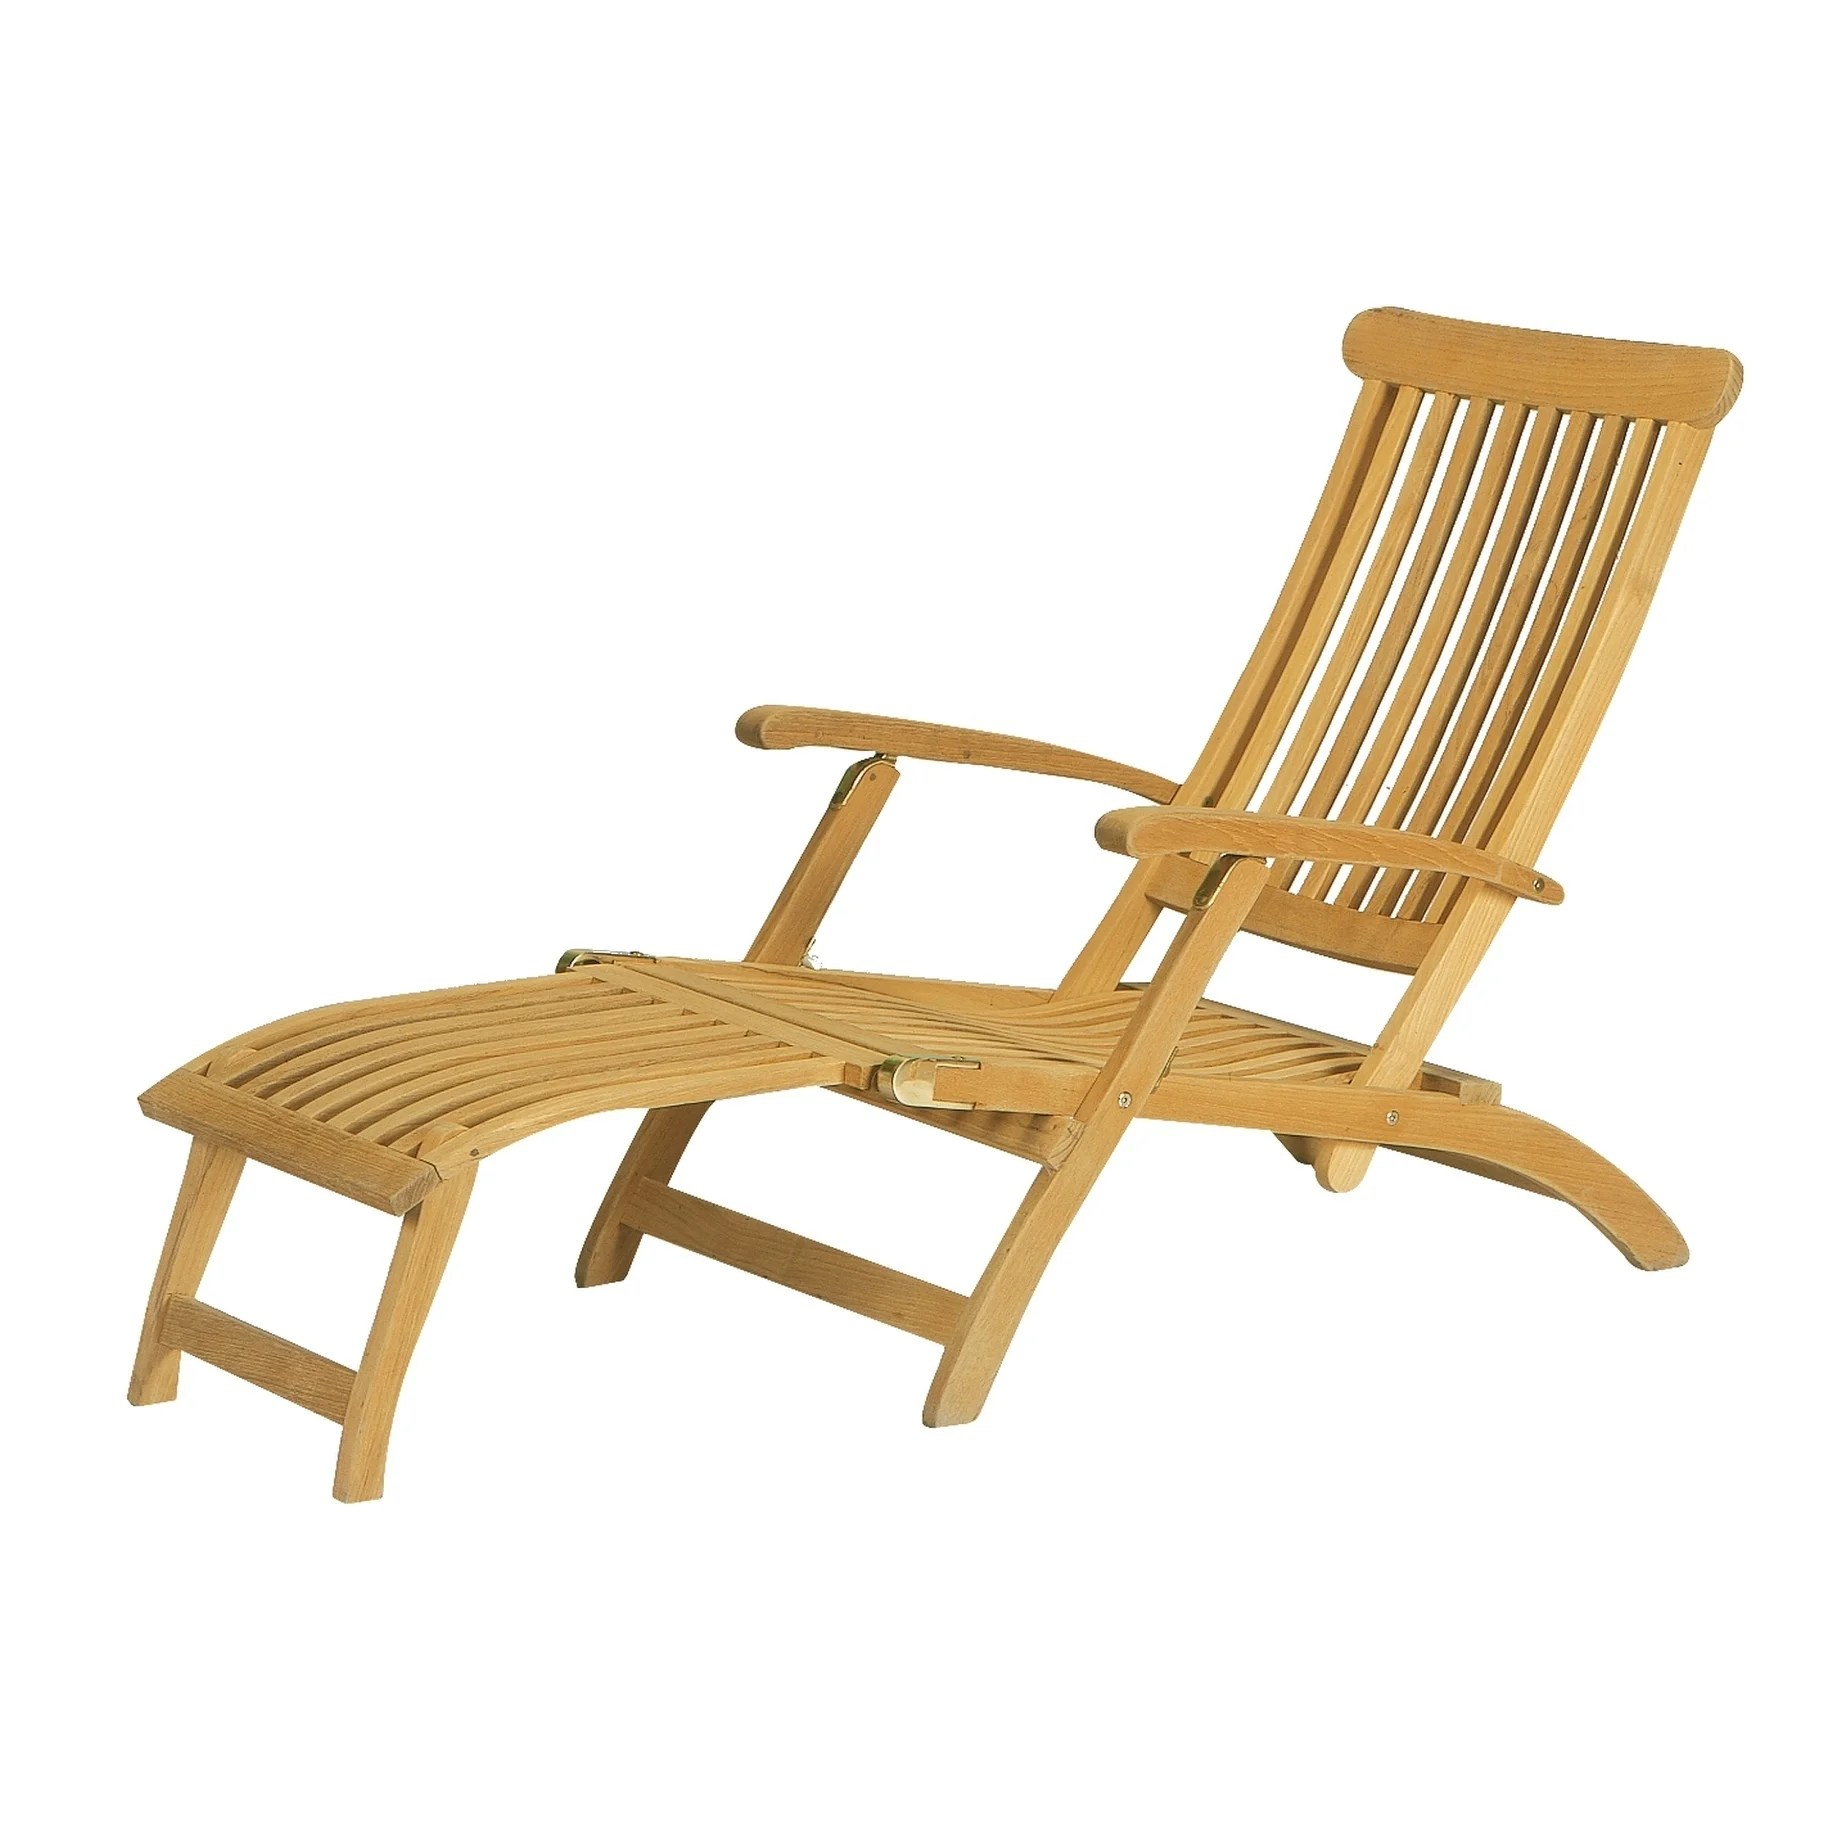 Teak Chaise Lounge Chairs Details About Steamer Outdoor Folding Teak Chaise Lounge Chair